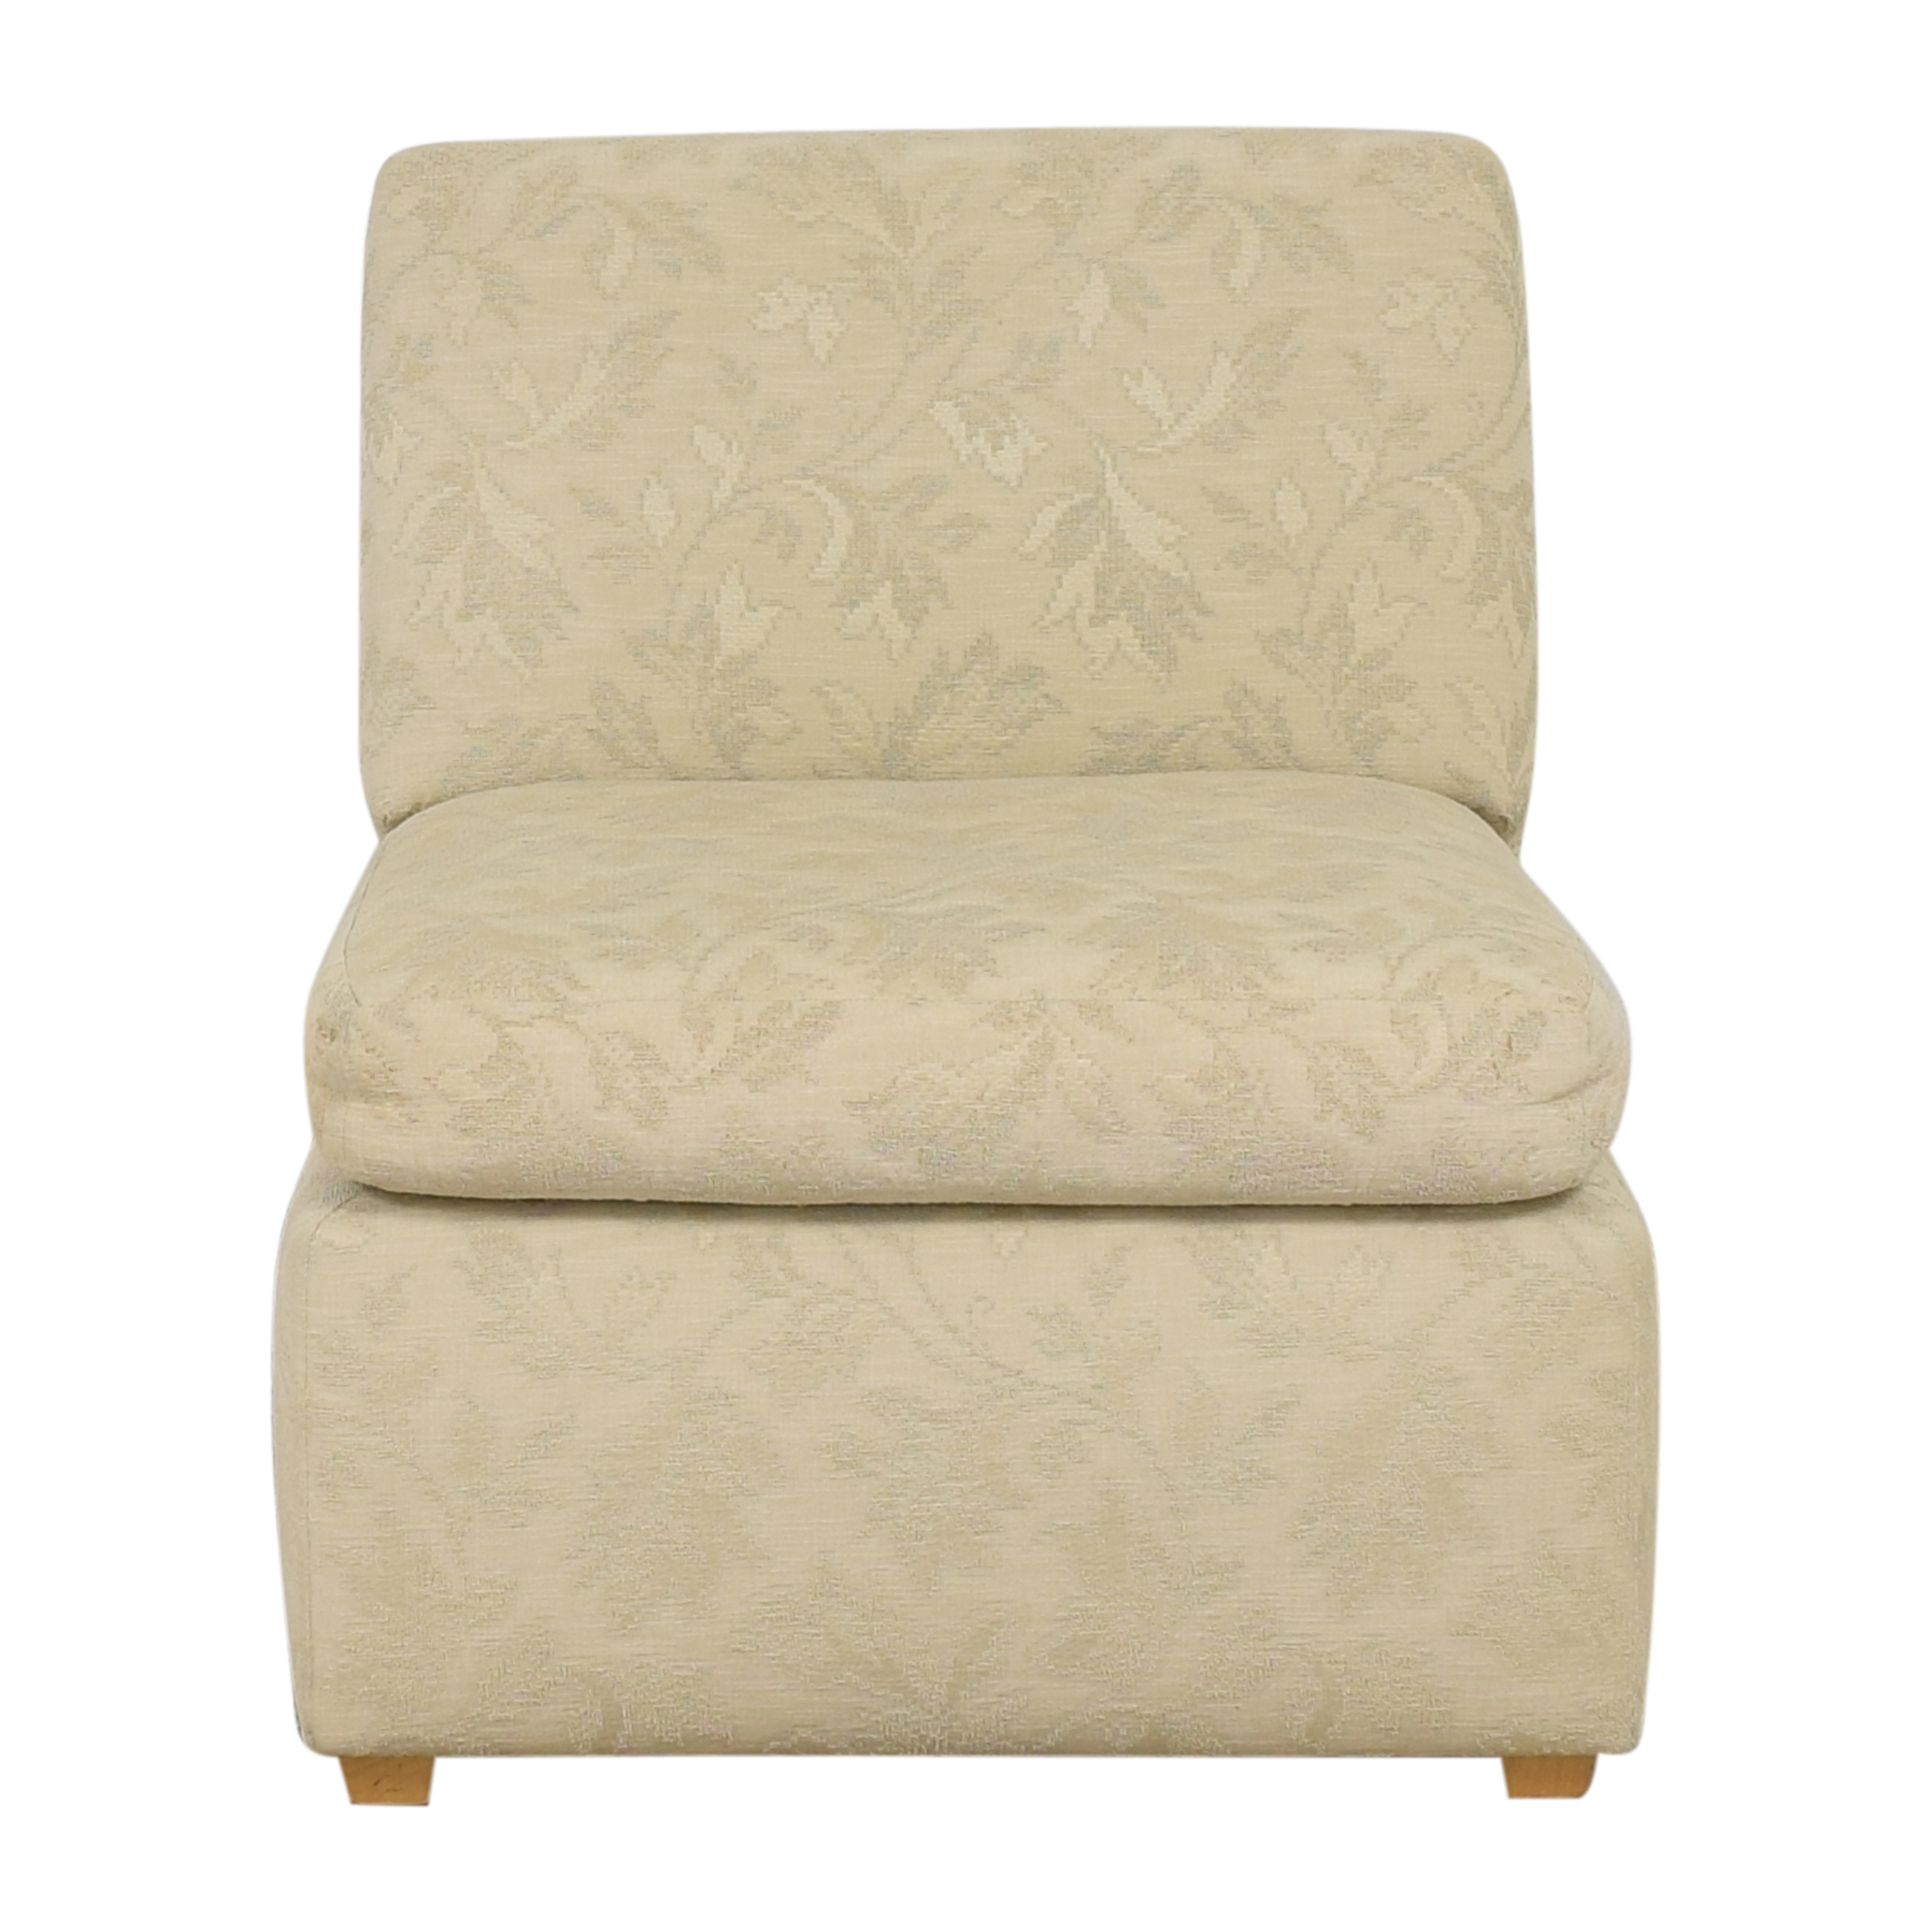 Billy Baldwin Studio Large Slipper Chair by Ventry / Chairs